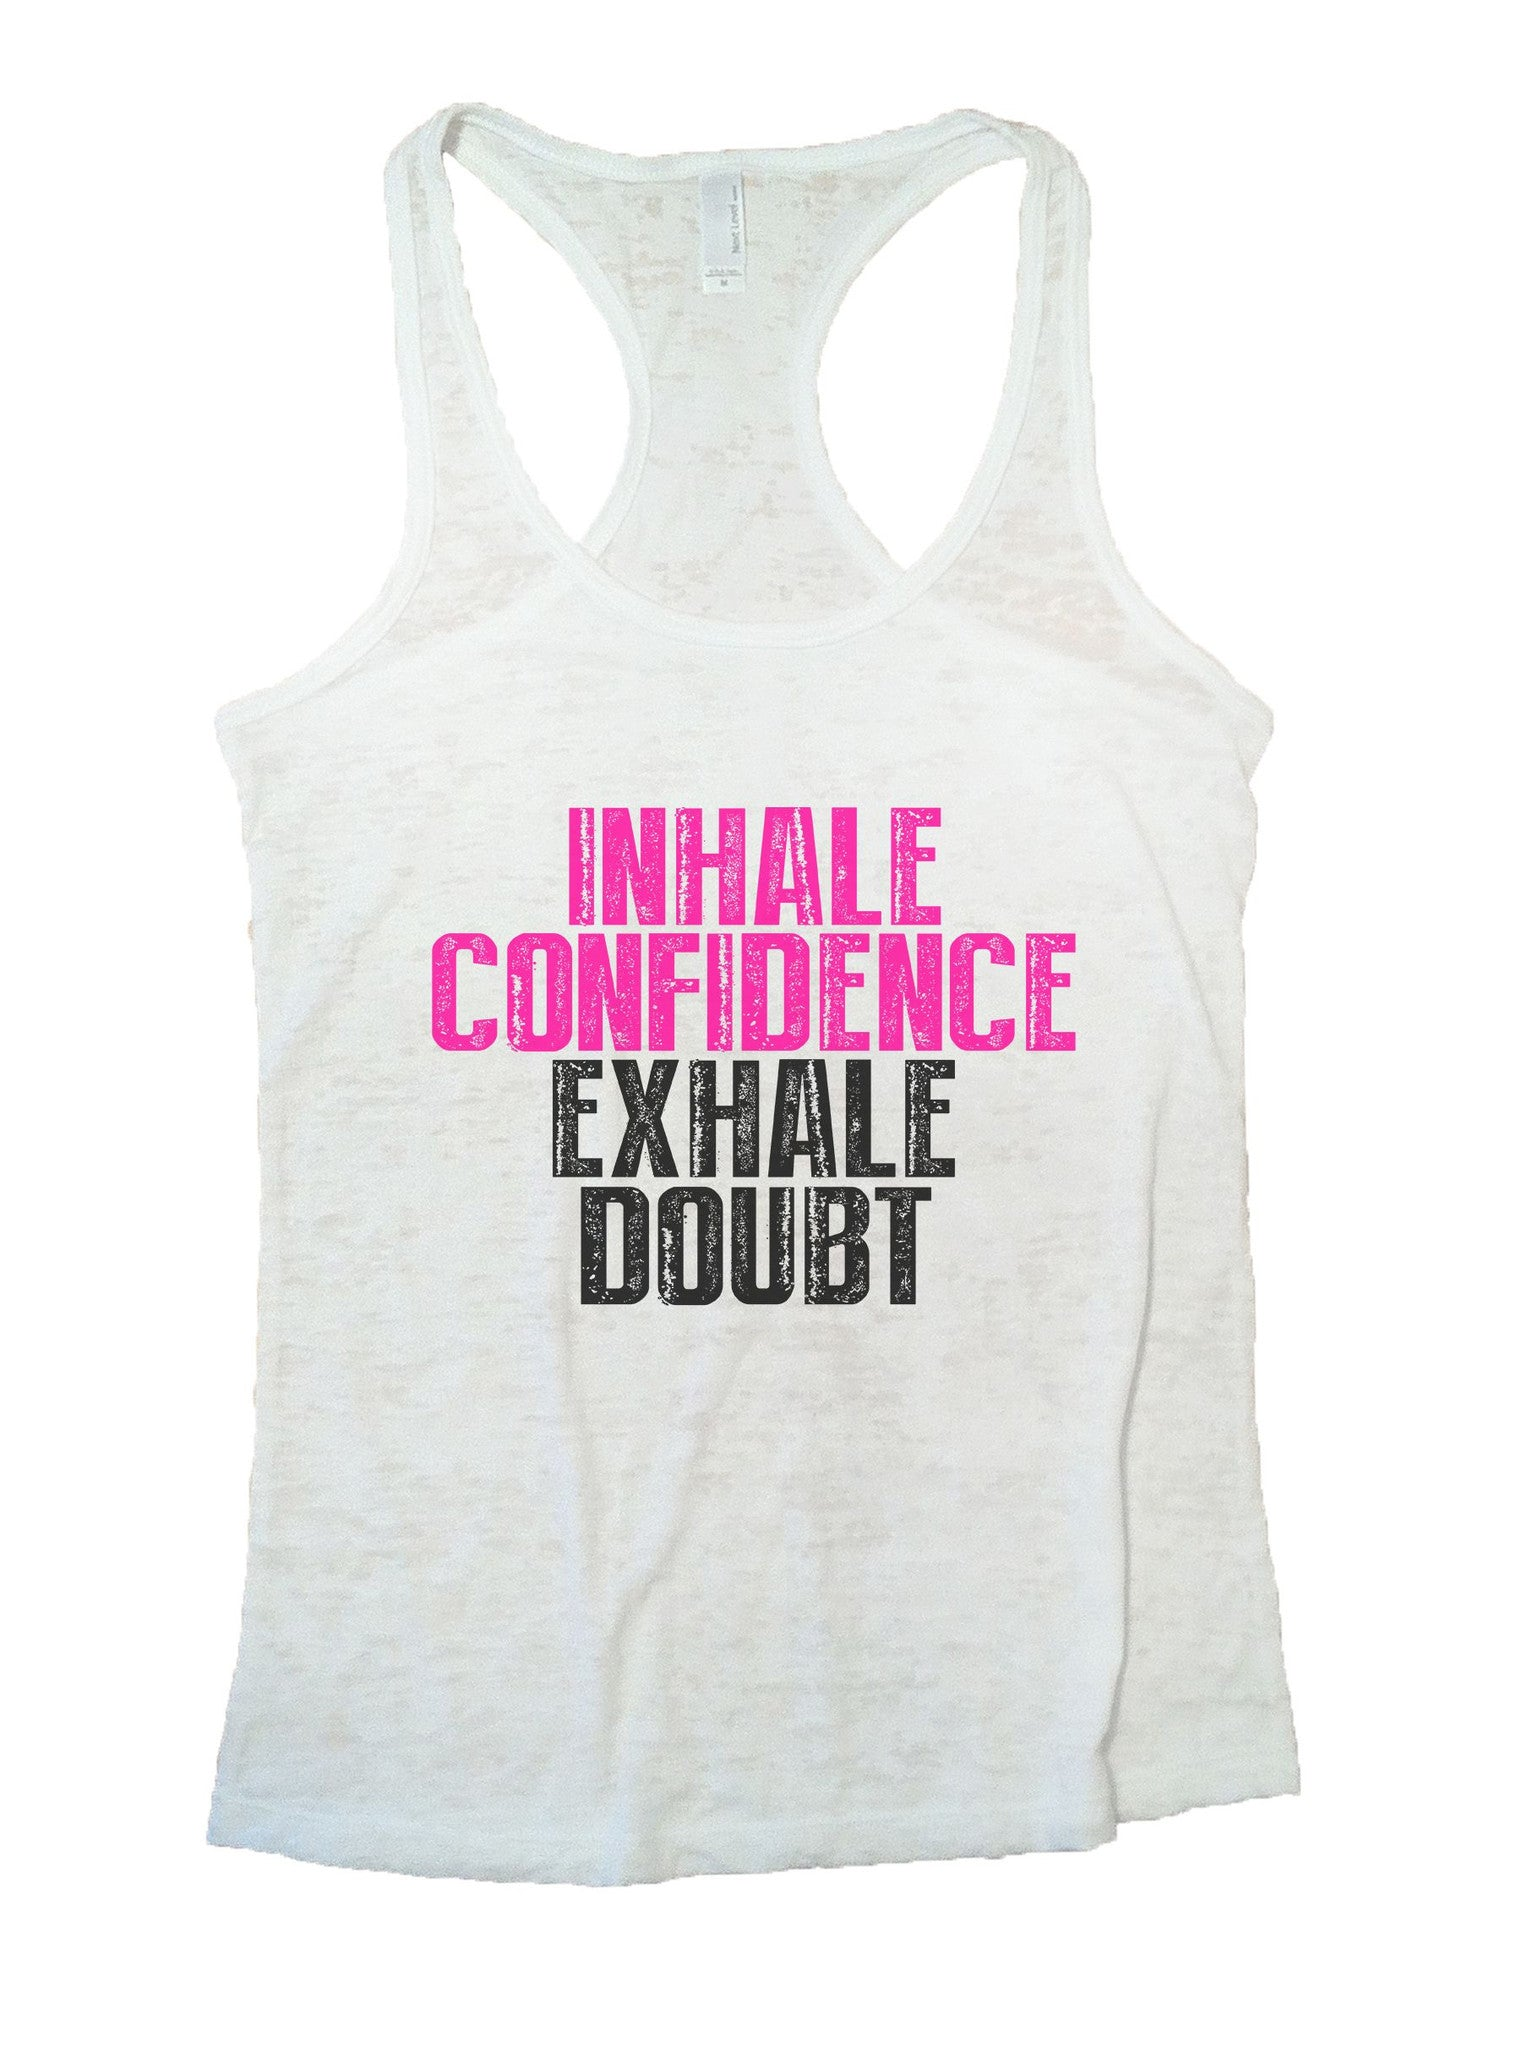 Inhale Confidence Exhale Doubt Burnout Tank Top By BurnoutTankTops.com - 1021 - Funny Shirts Tank Tops Burnouts and Triblends  - 6